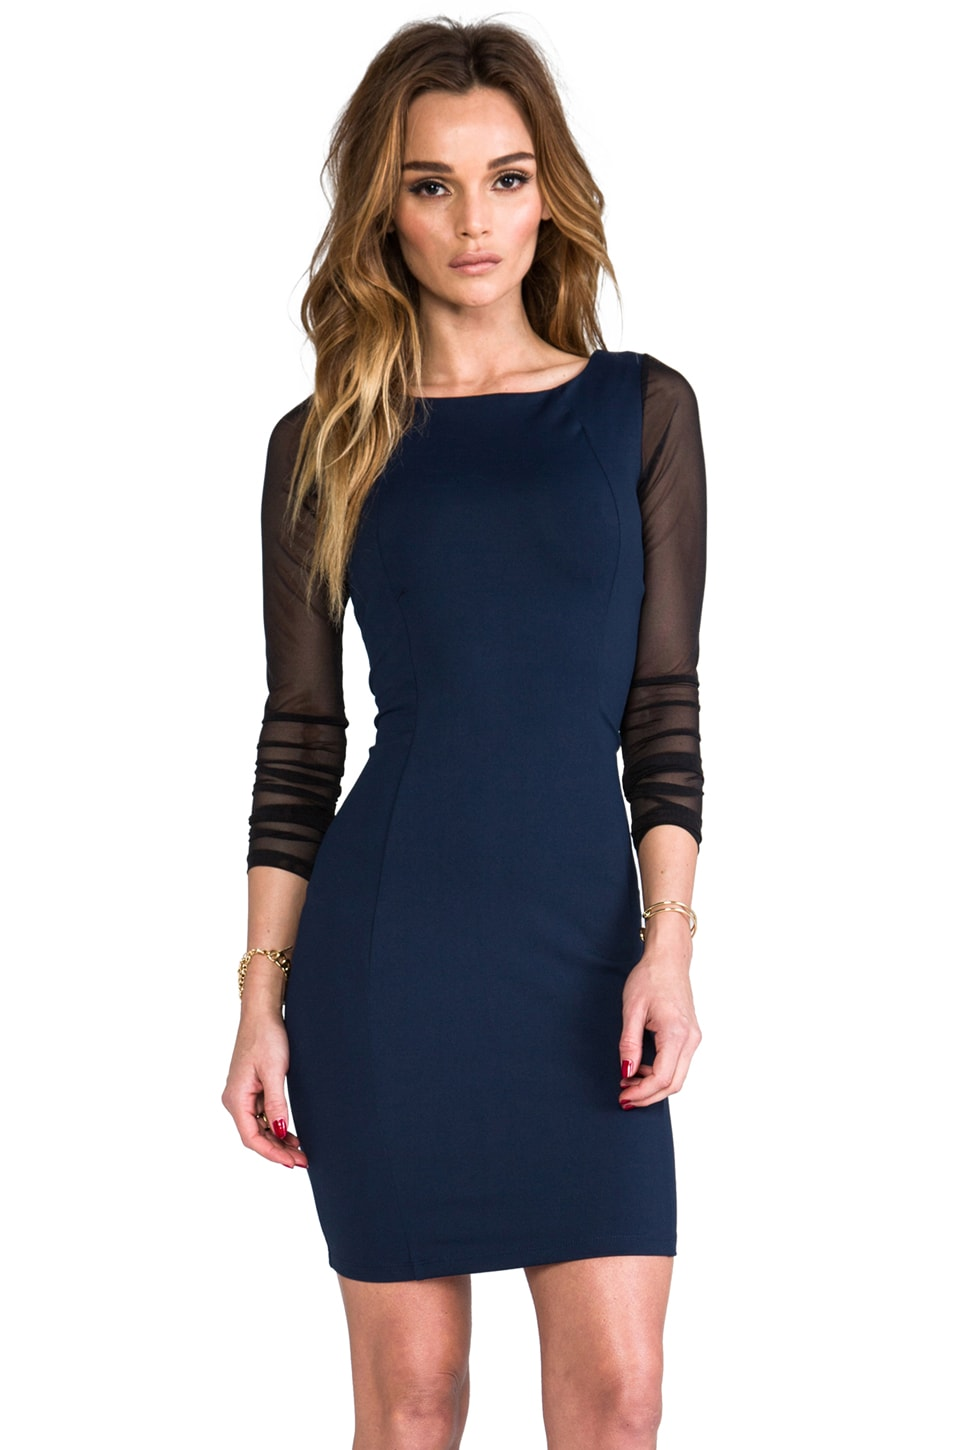 David Lerner The Waldorf Dress in Navy/Black